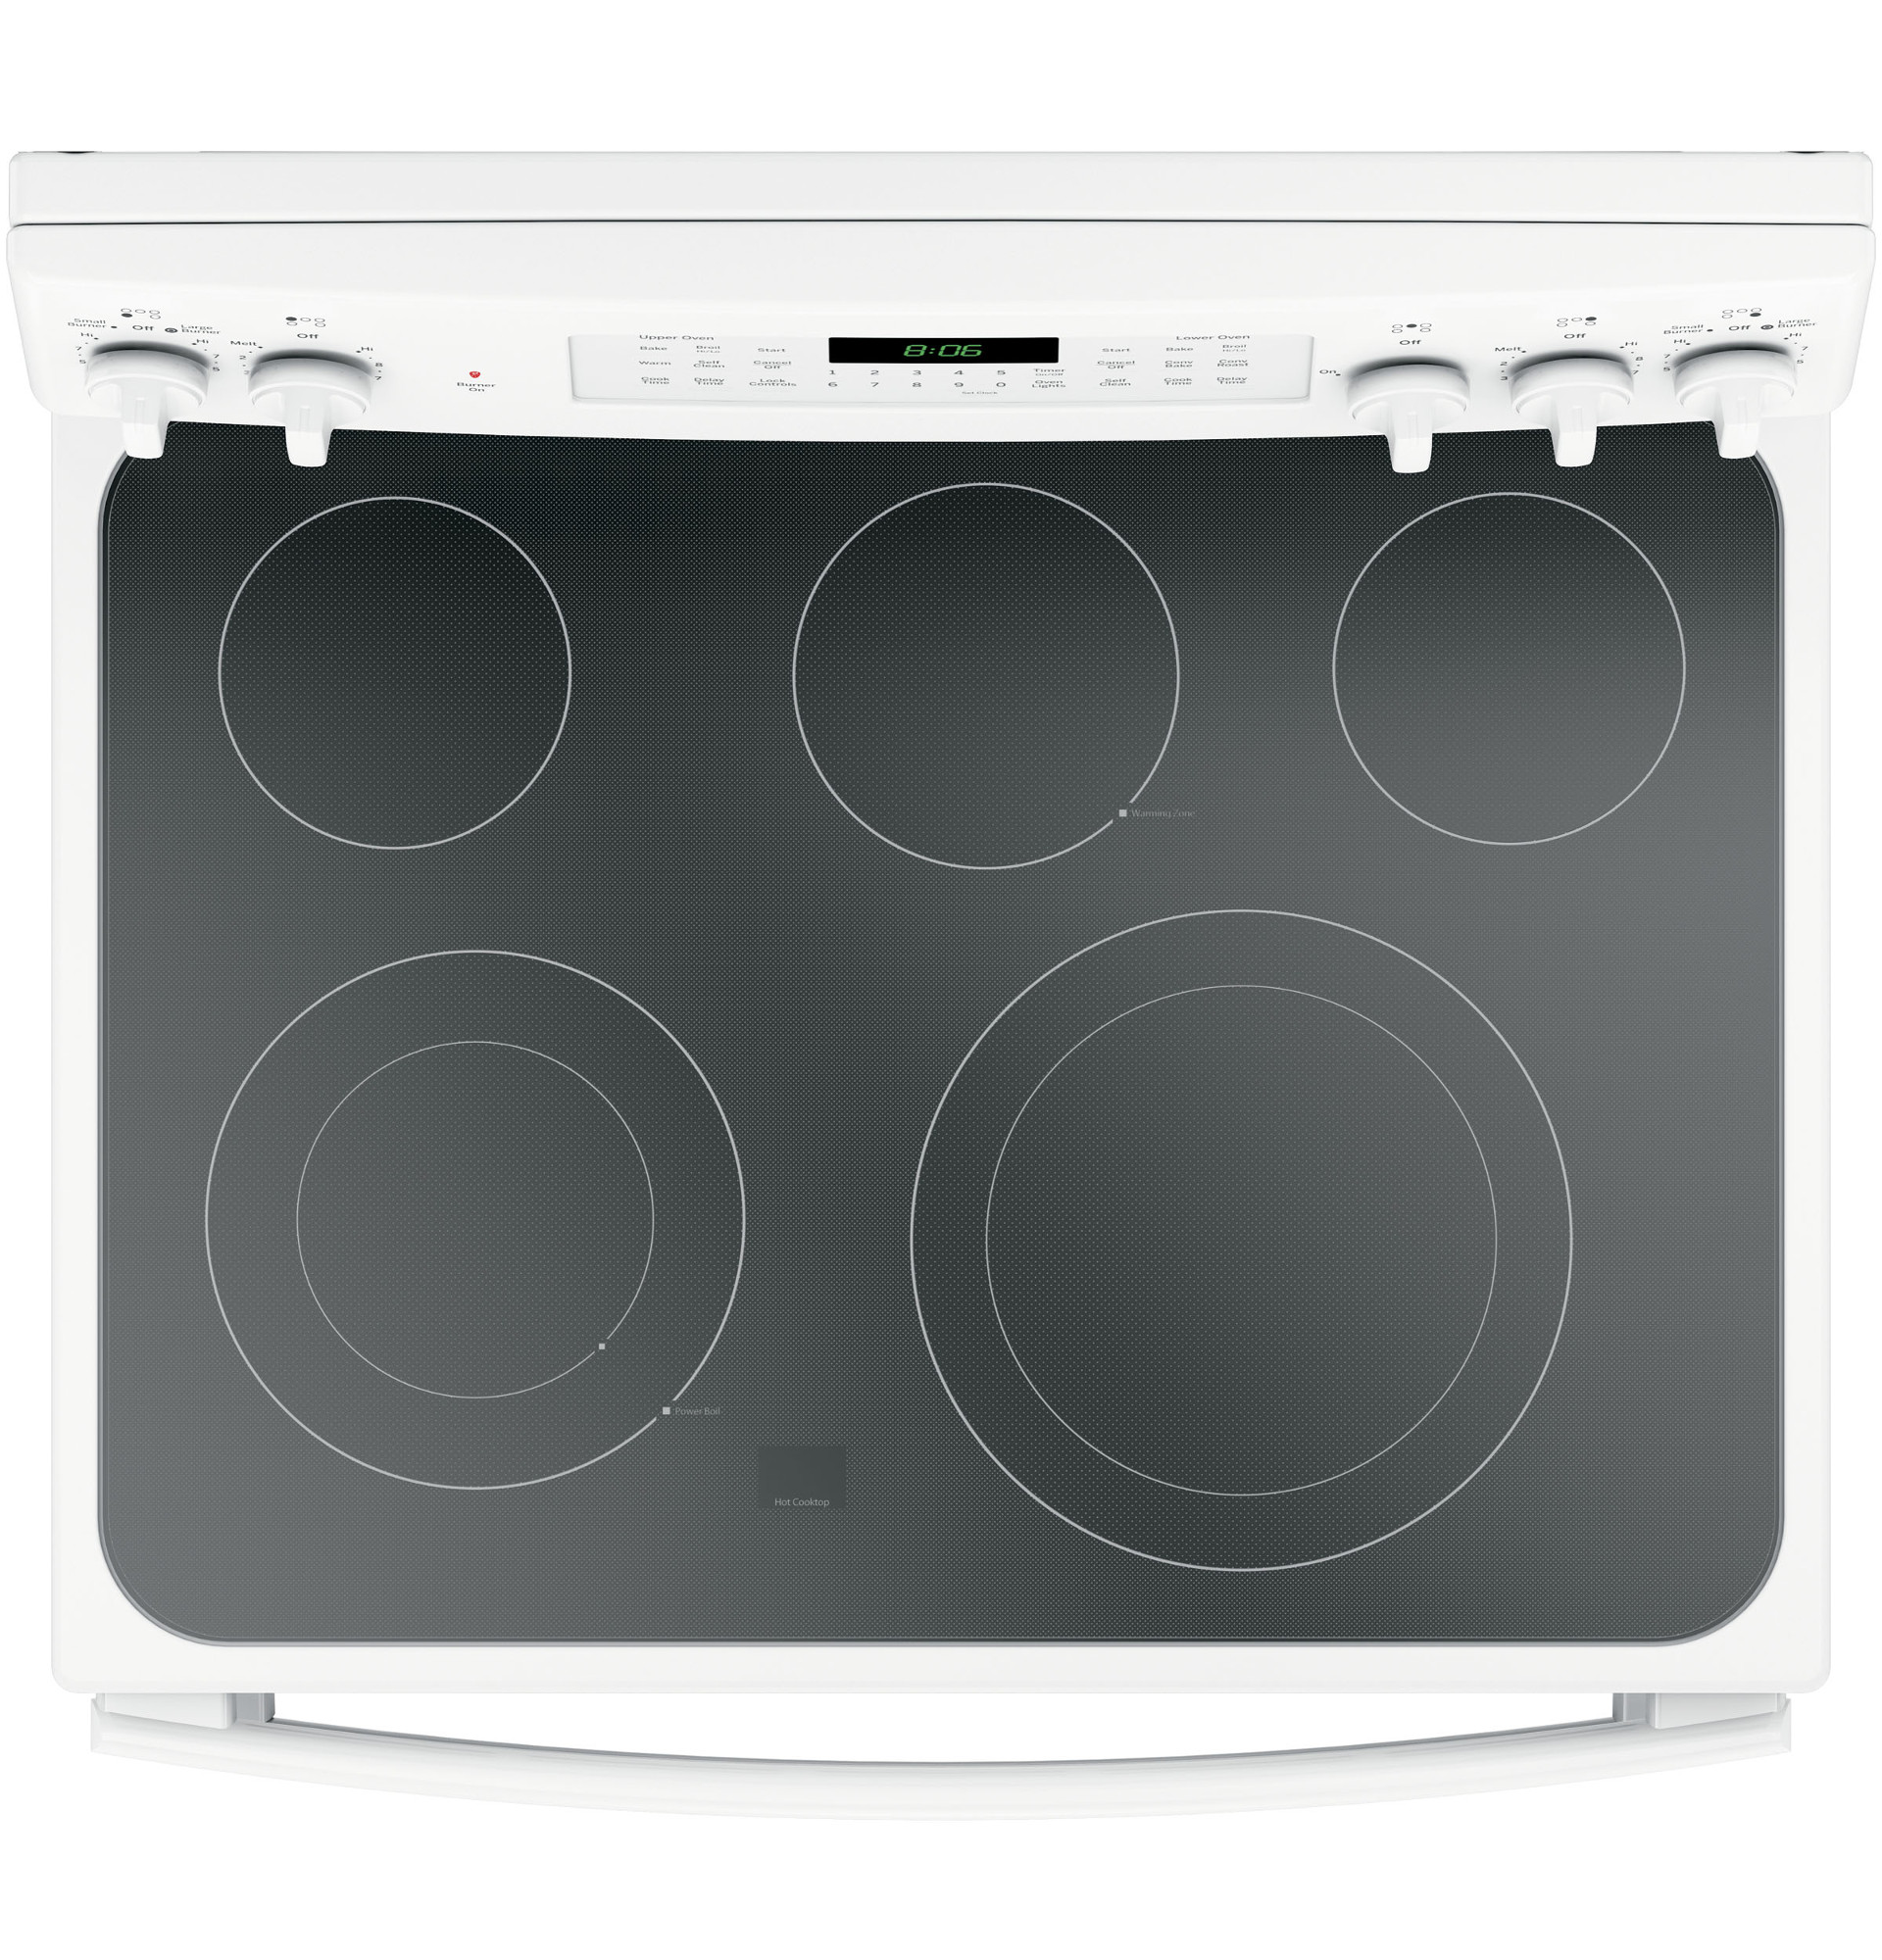 GE Appliances JB860DJWW 6.6 cu. ft. Freestanding Electric Double Oven Convection Range - White